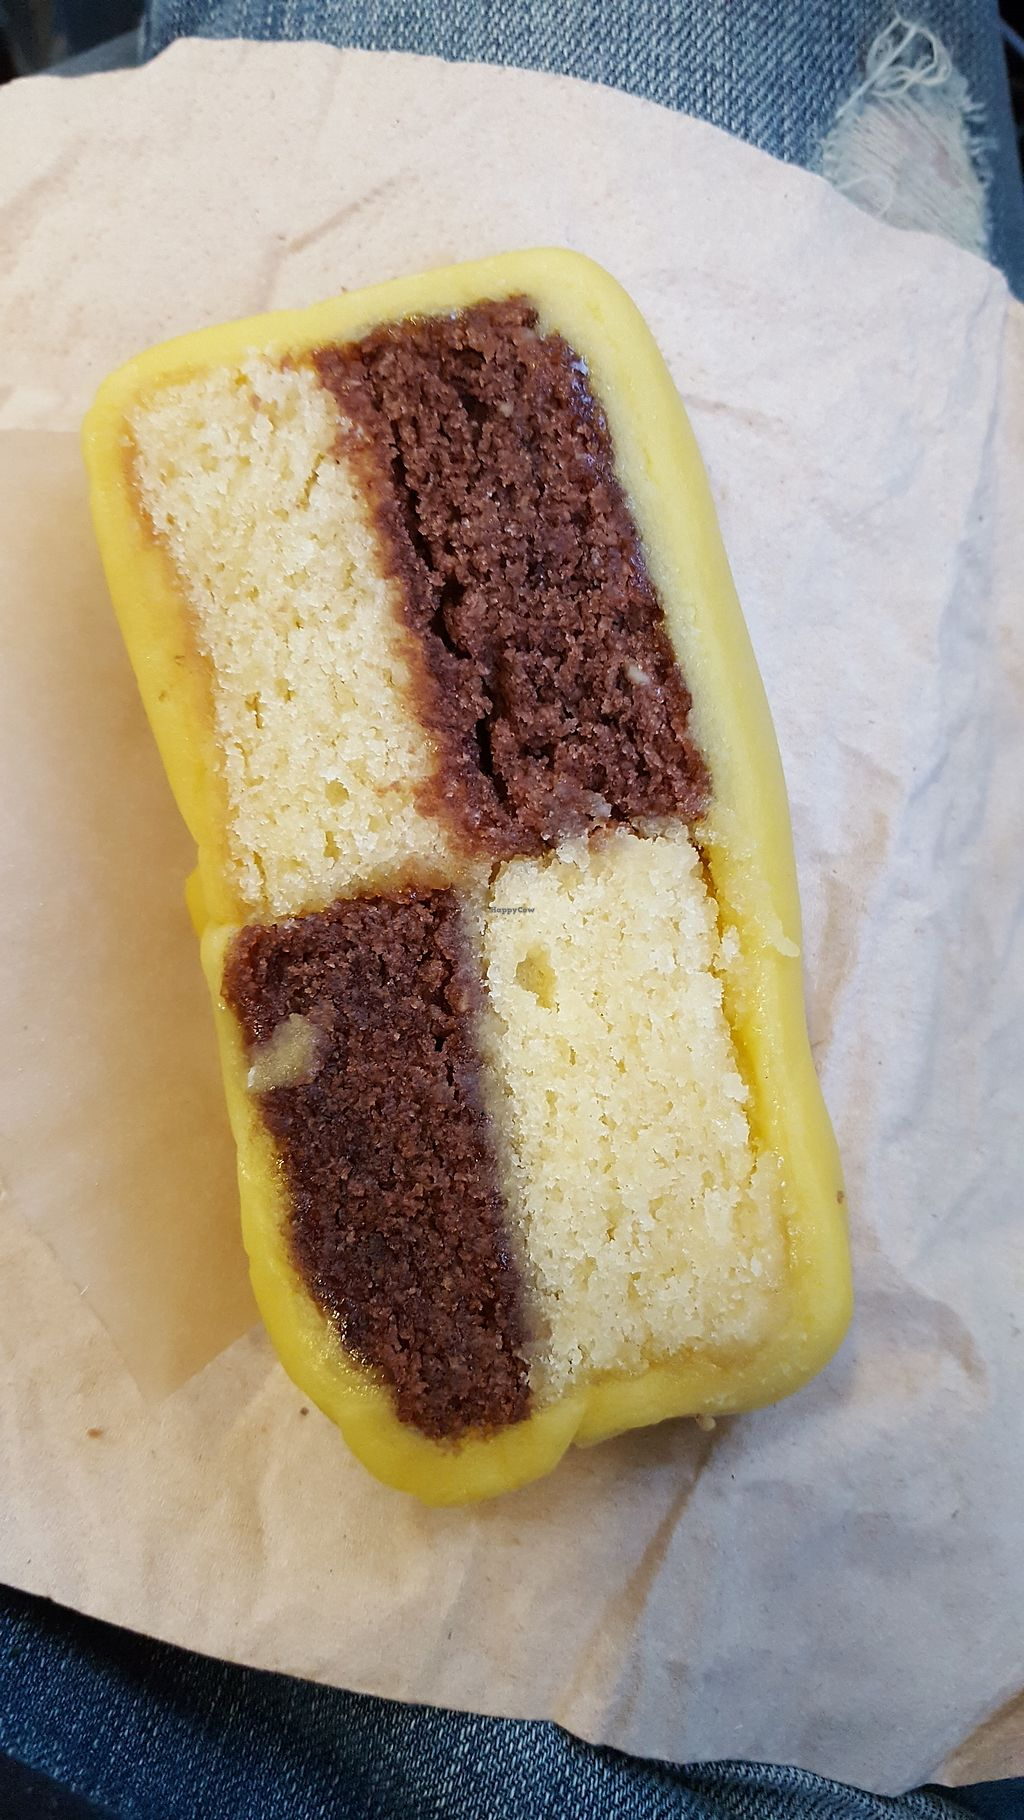 """Photo of Rainbow Wholefoods  by <a href=""""/members/profile/VeganAnnaS"""">VeganAnnaS</a> <br/>Battenberg cake <br/> September 25, 2017  - <a href='/contact/abuse/image/636/308433'>Report</a>"""